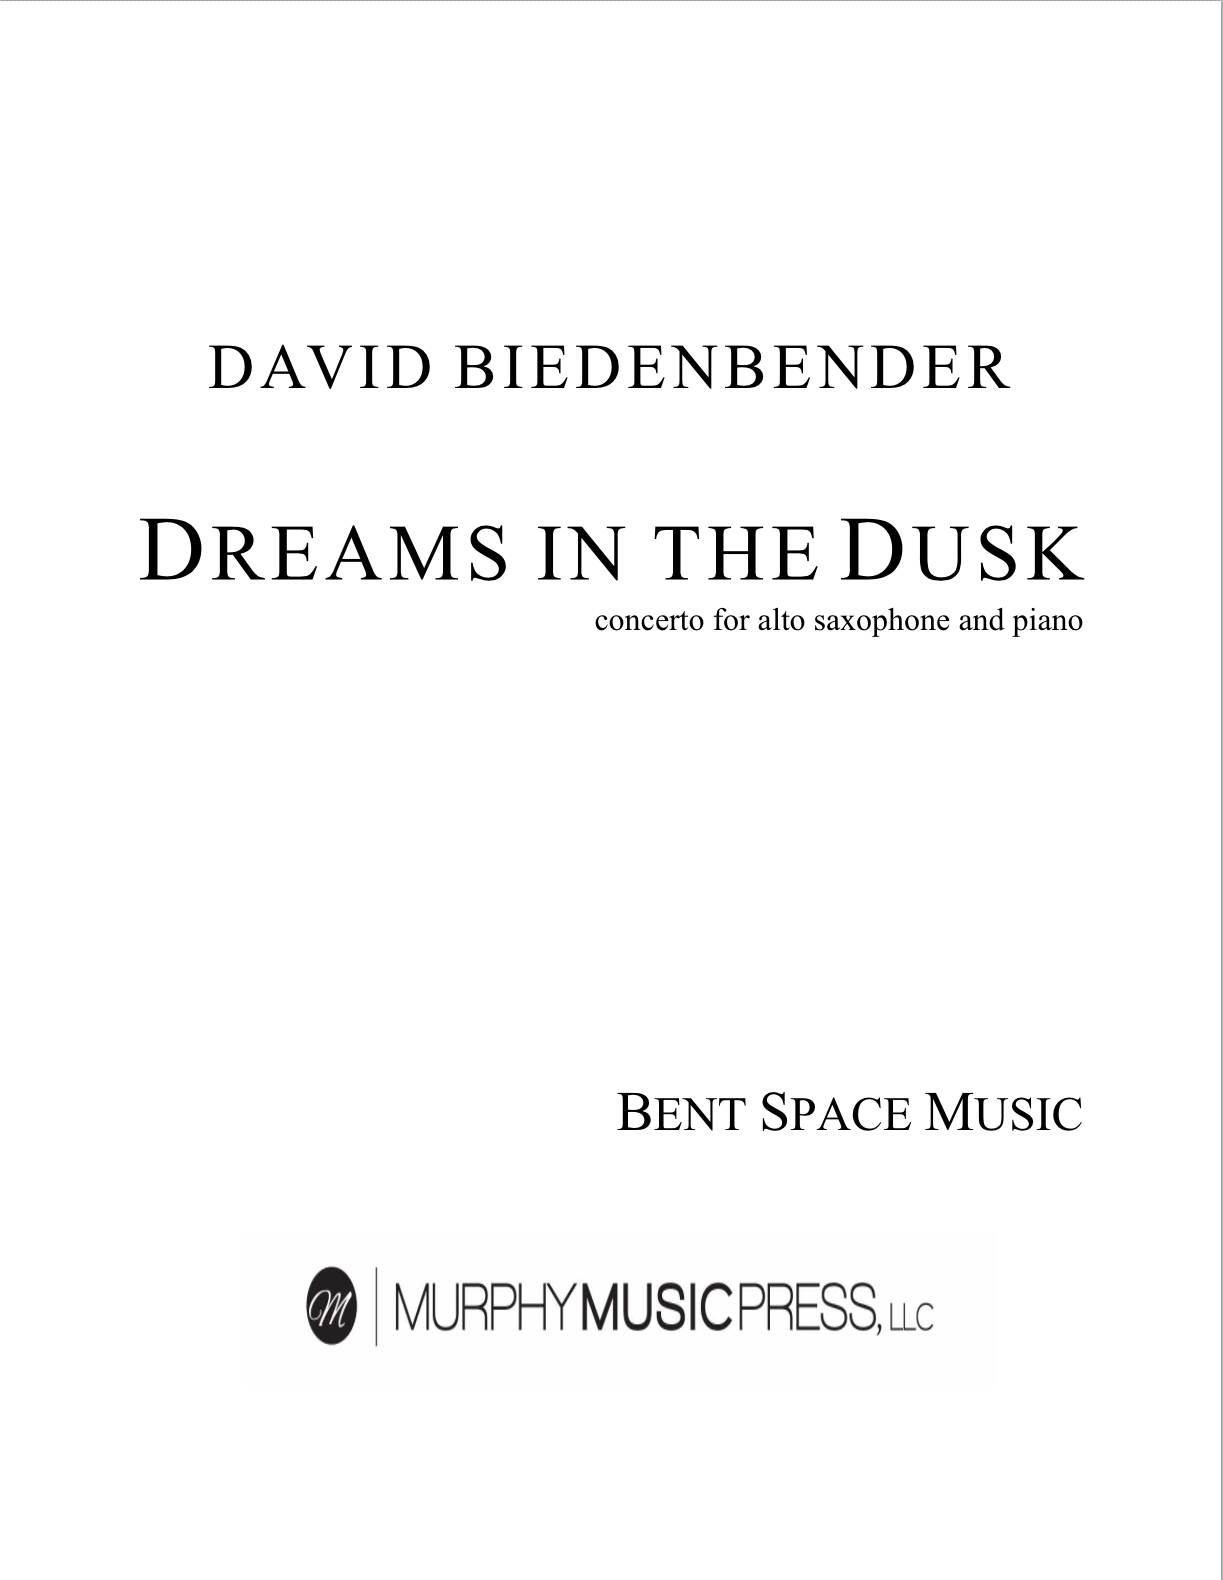 Dreams In The Dusk - Piano Reduction by David Biedenbender